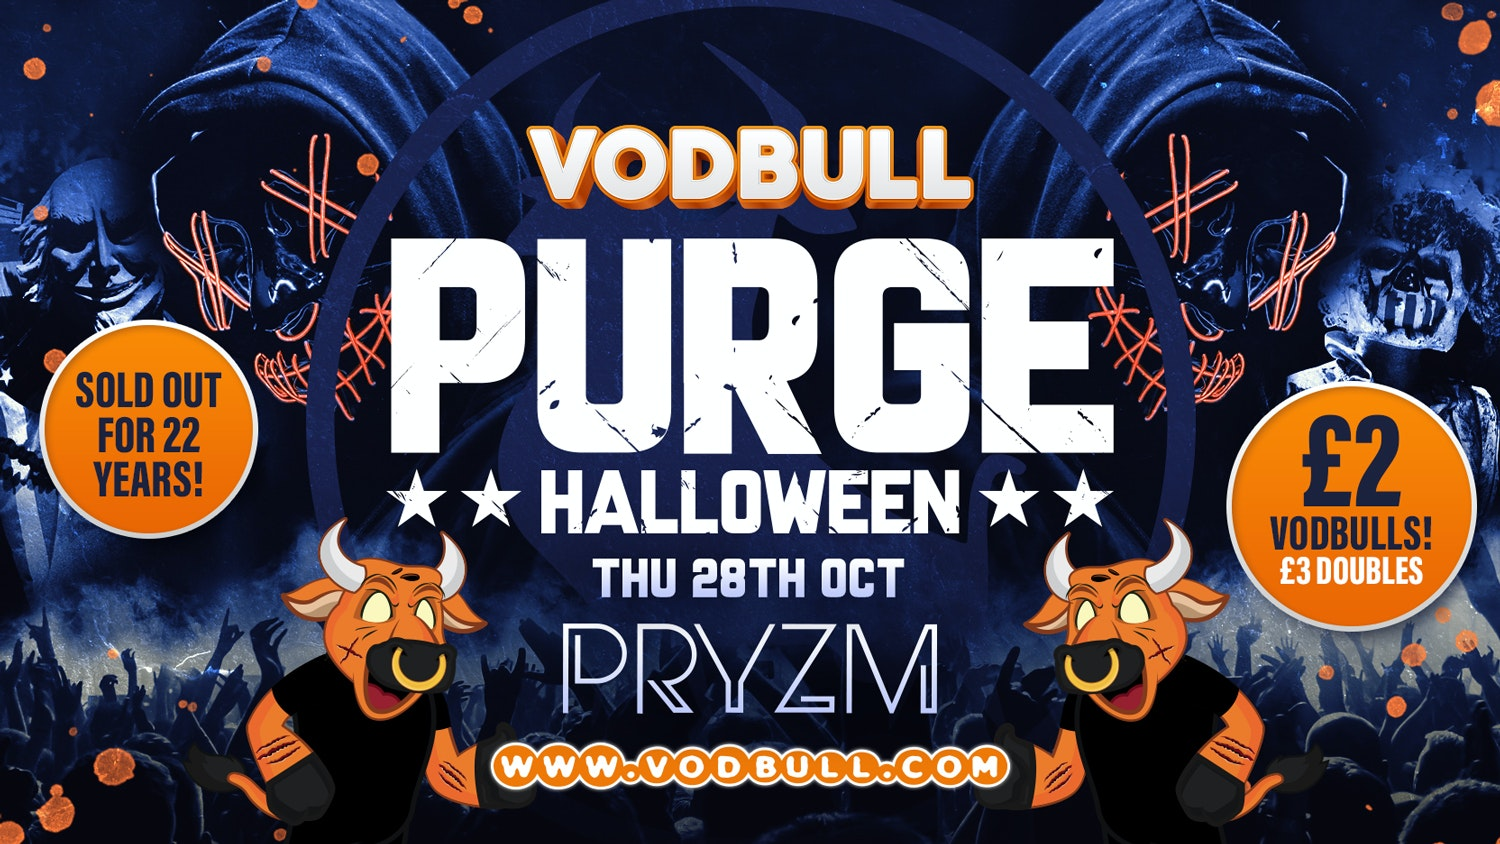 🎥VODBULL PURGE PARTY 🎥HALLOWEEN Movie Madness! 🎥 SELLING FAST!!